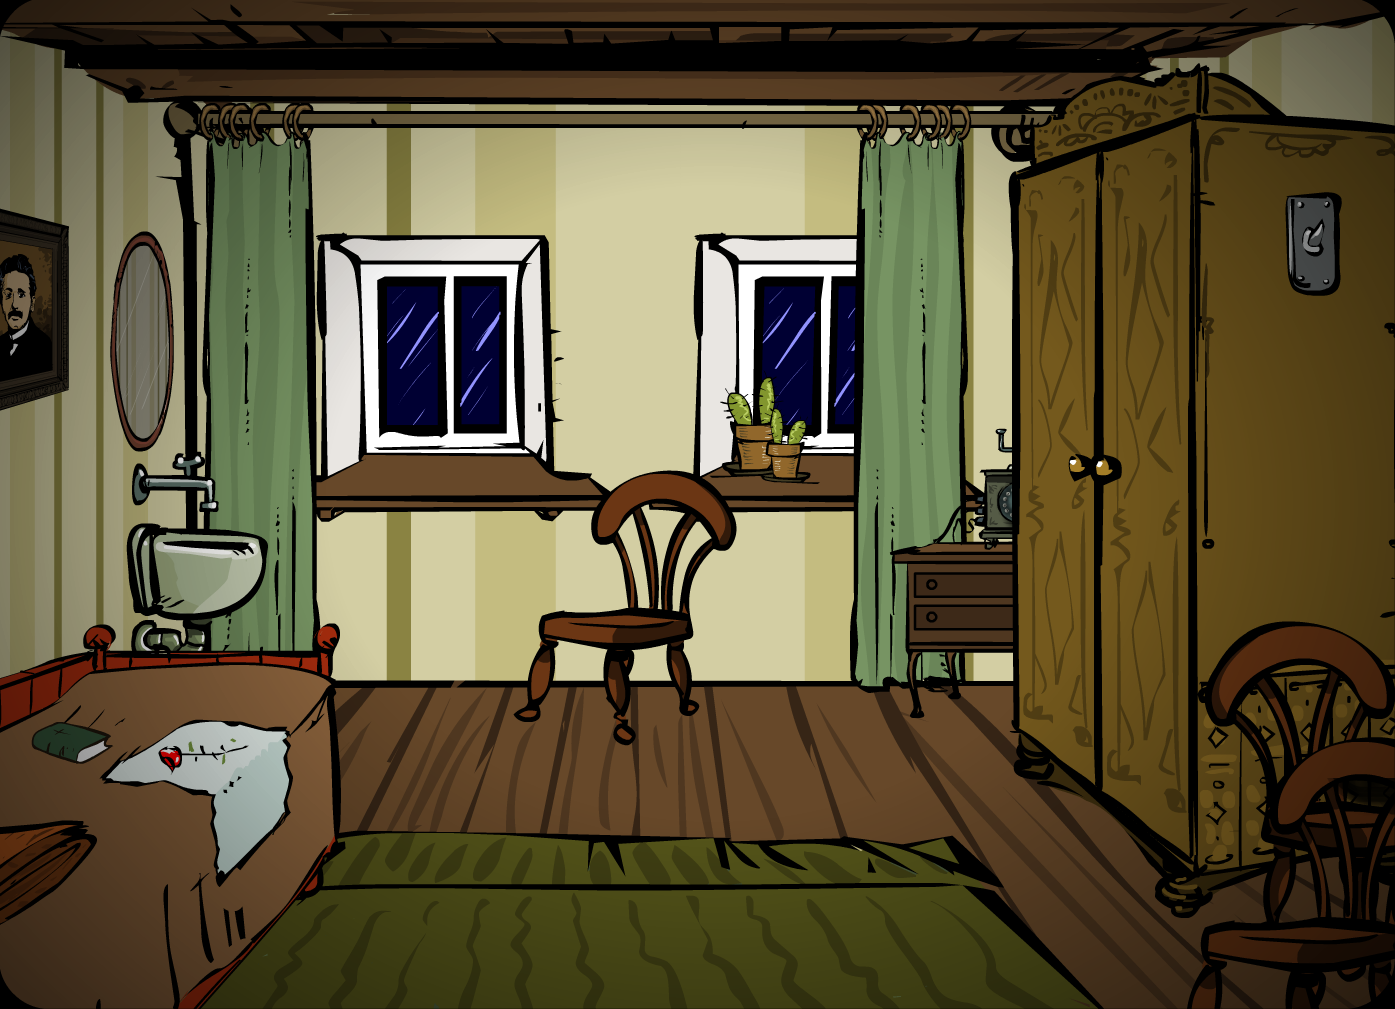 File:Room14.png